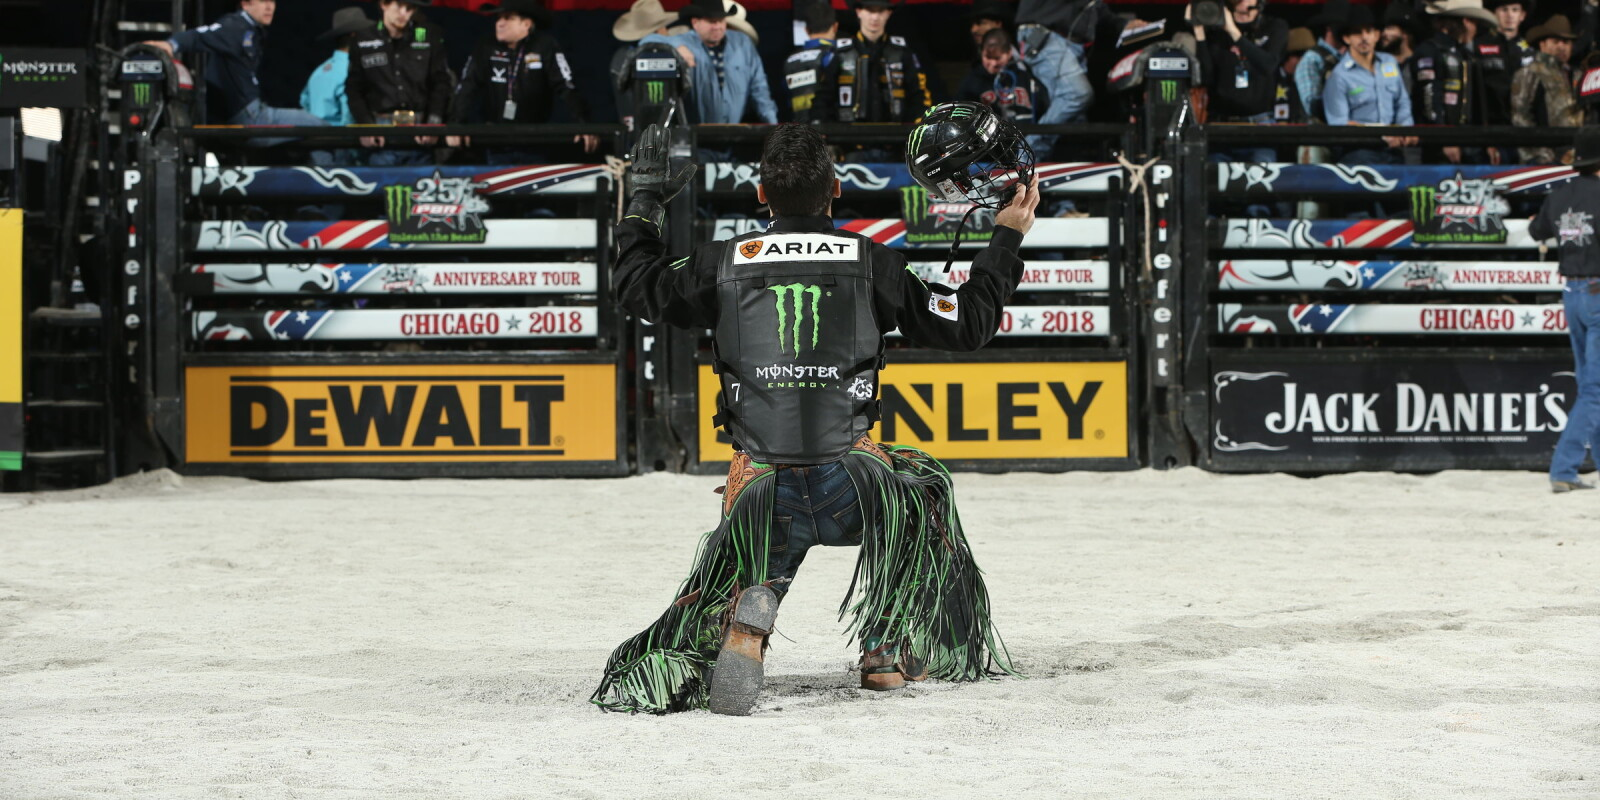 Image from the Chicago Unleash the Beast PBR